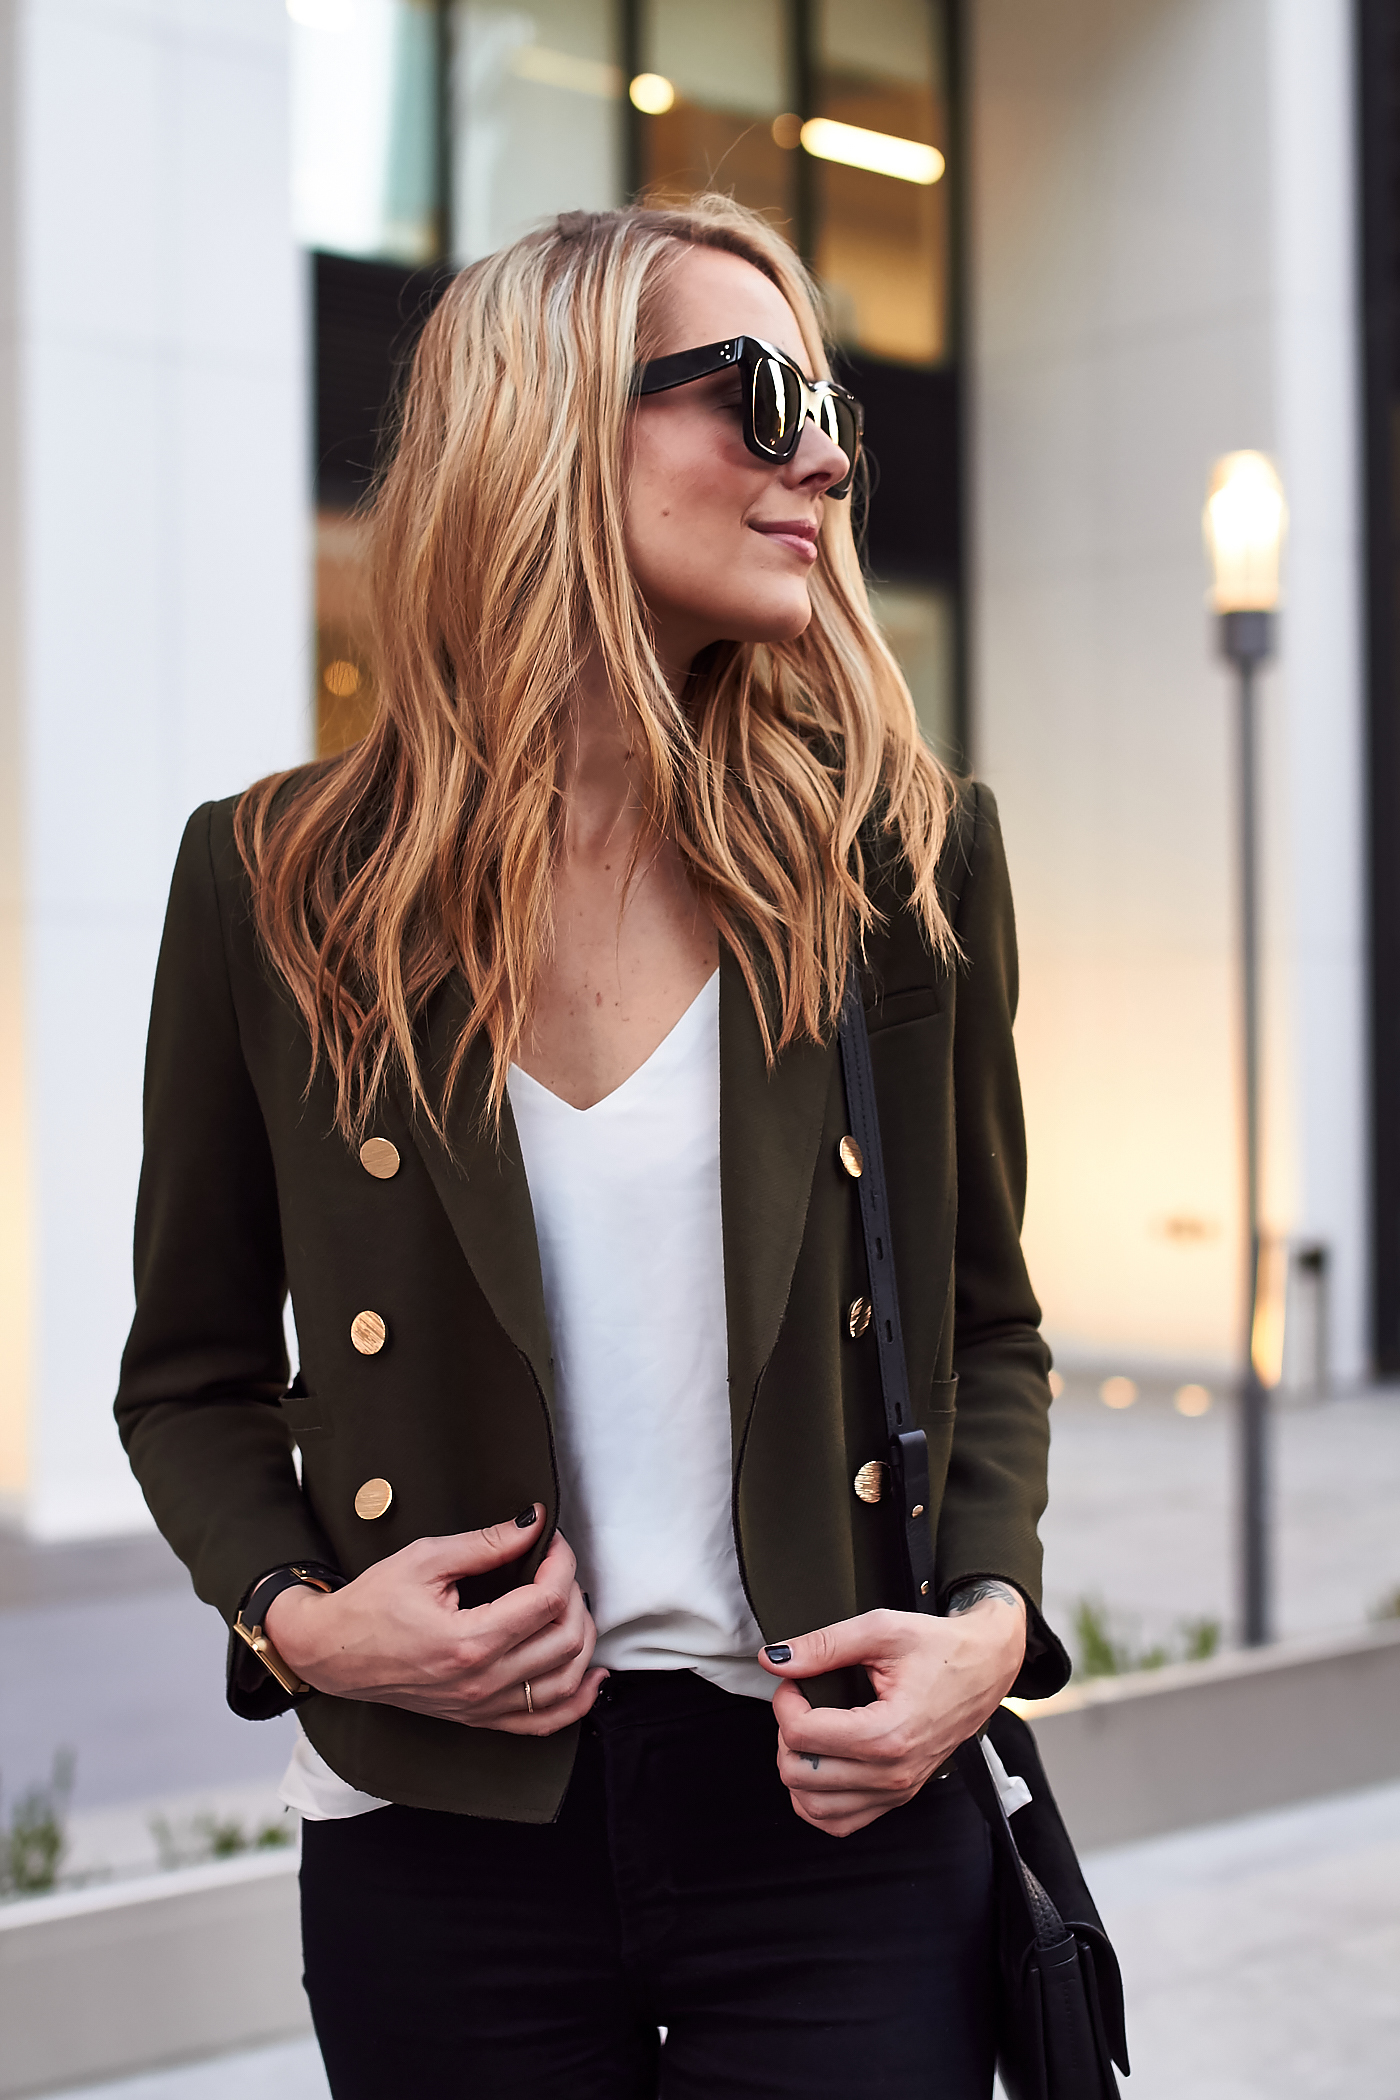 fashion-jackson-black-celine-sunglasses-topshop-green-military-blazer